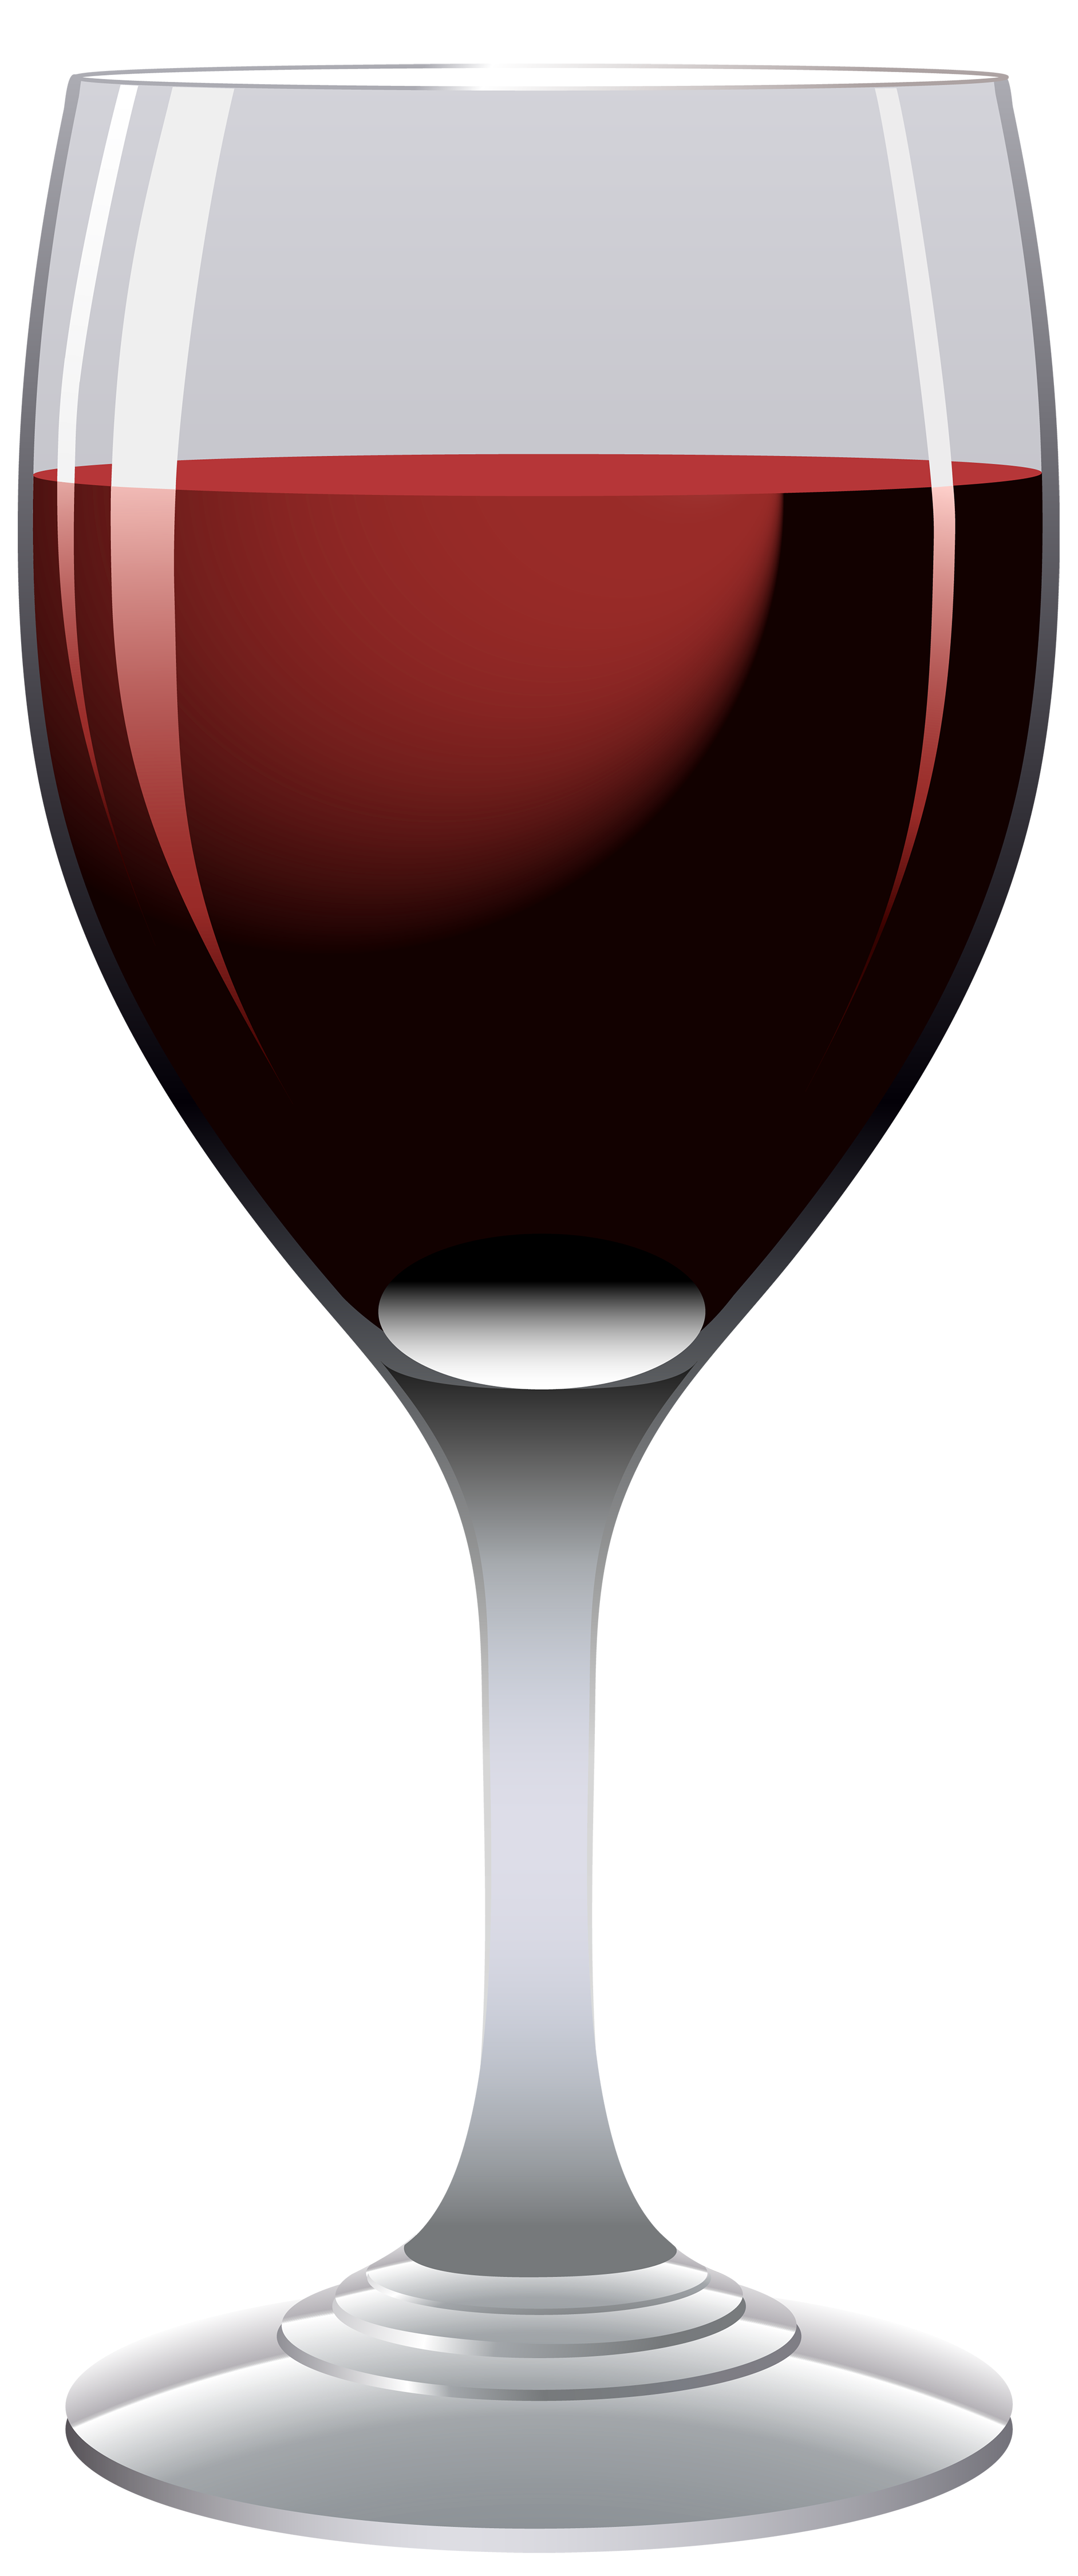 Clipart Wine Glass - Glass Of Wine, Transparent background PNG HD thumbnail